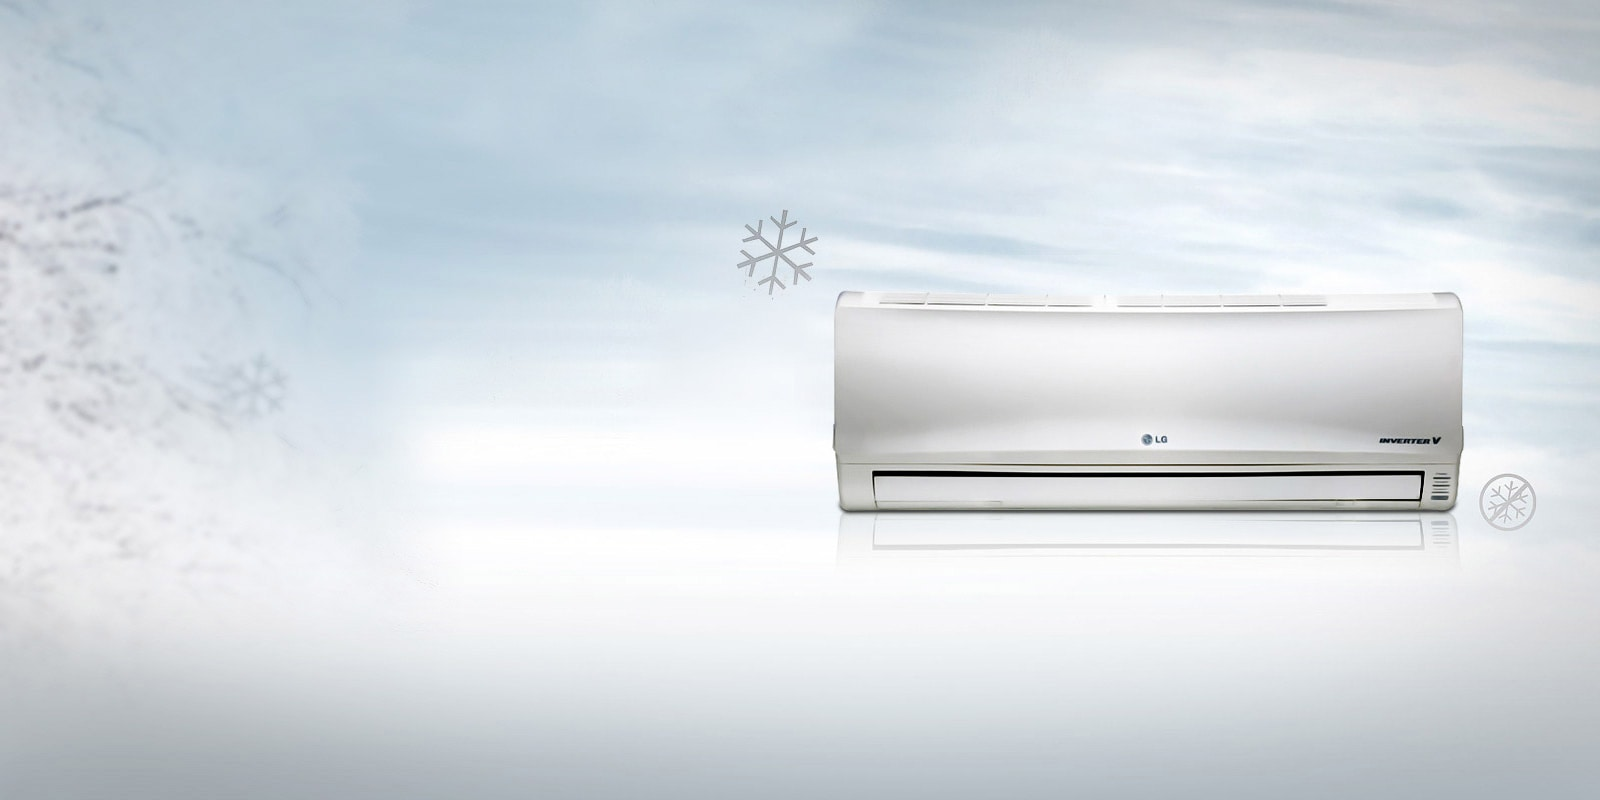 #526A79 Air Solutions: Discover LG Air Solutions LG Singapore Best 4823 Inverter Window Ac photos with 1600x800 px on helpvideos.info - Air Conditioners, Air Coolers and more